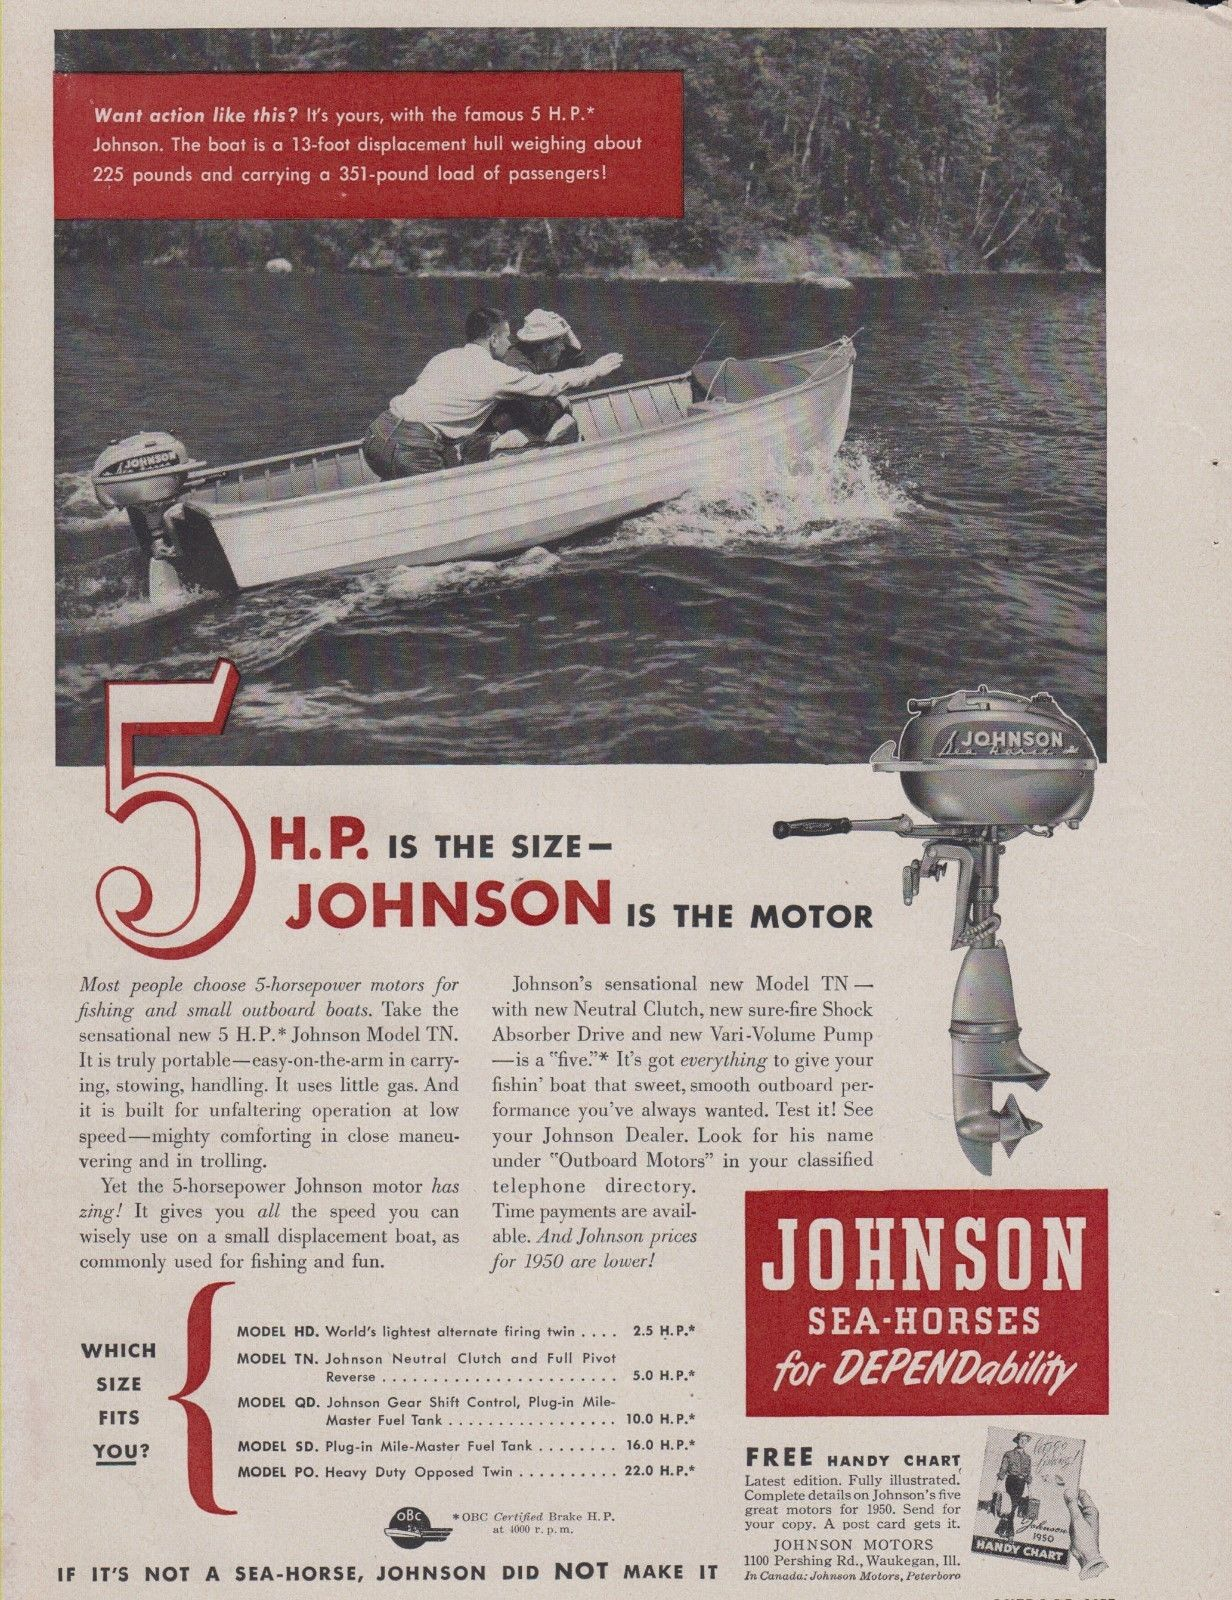 1950 Johnson Model Tn 5 Hp Outboard Motor Ad Vintage Horsepower 4 5hp 2 Stroke Motors Retro Advertising